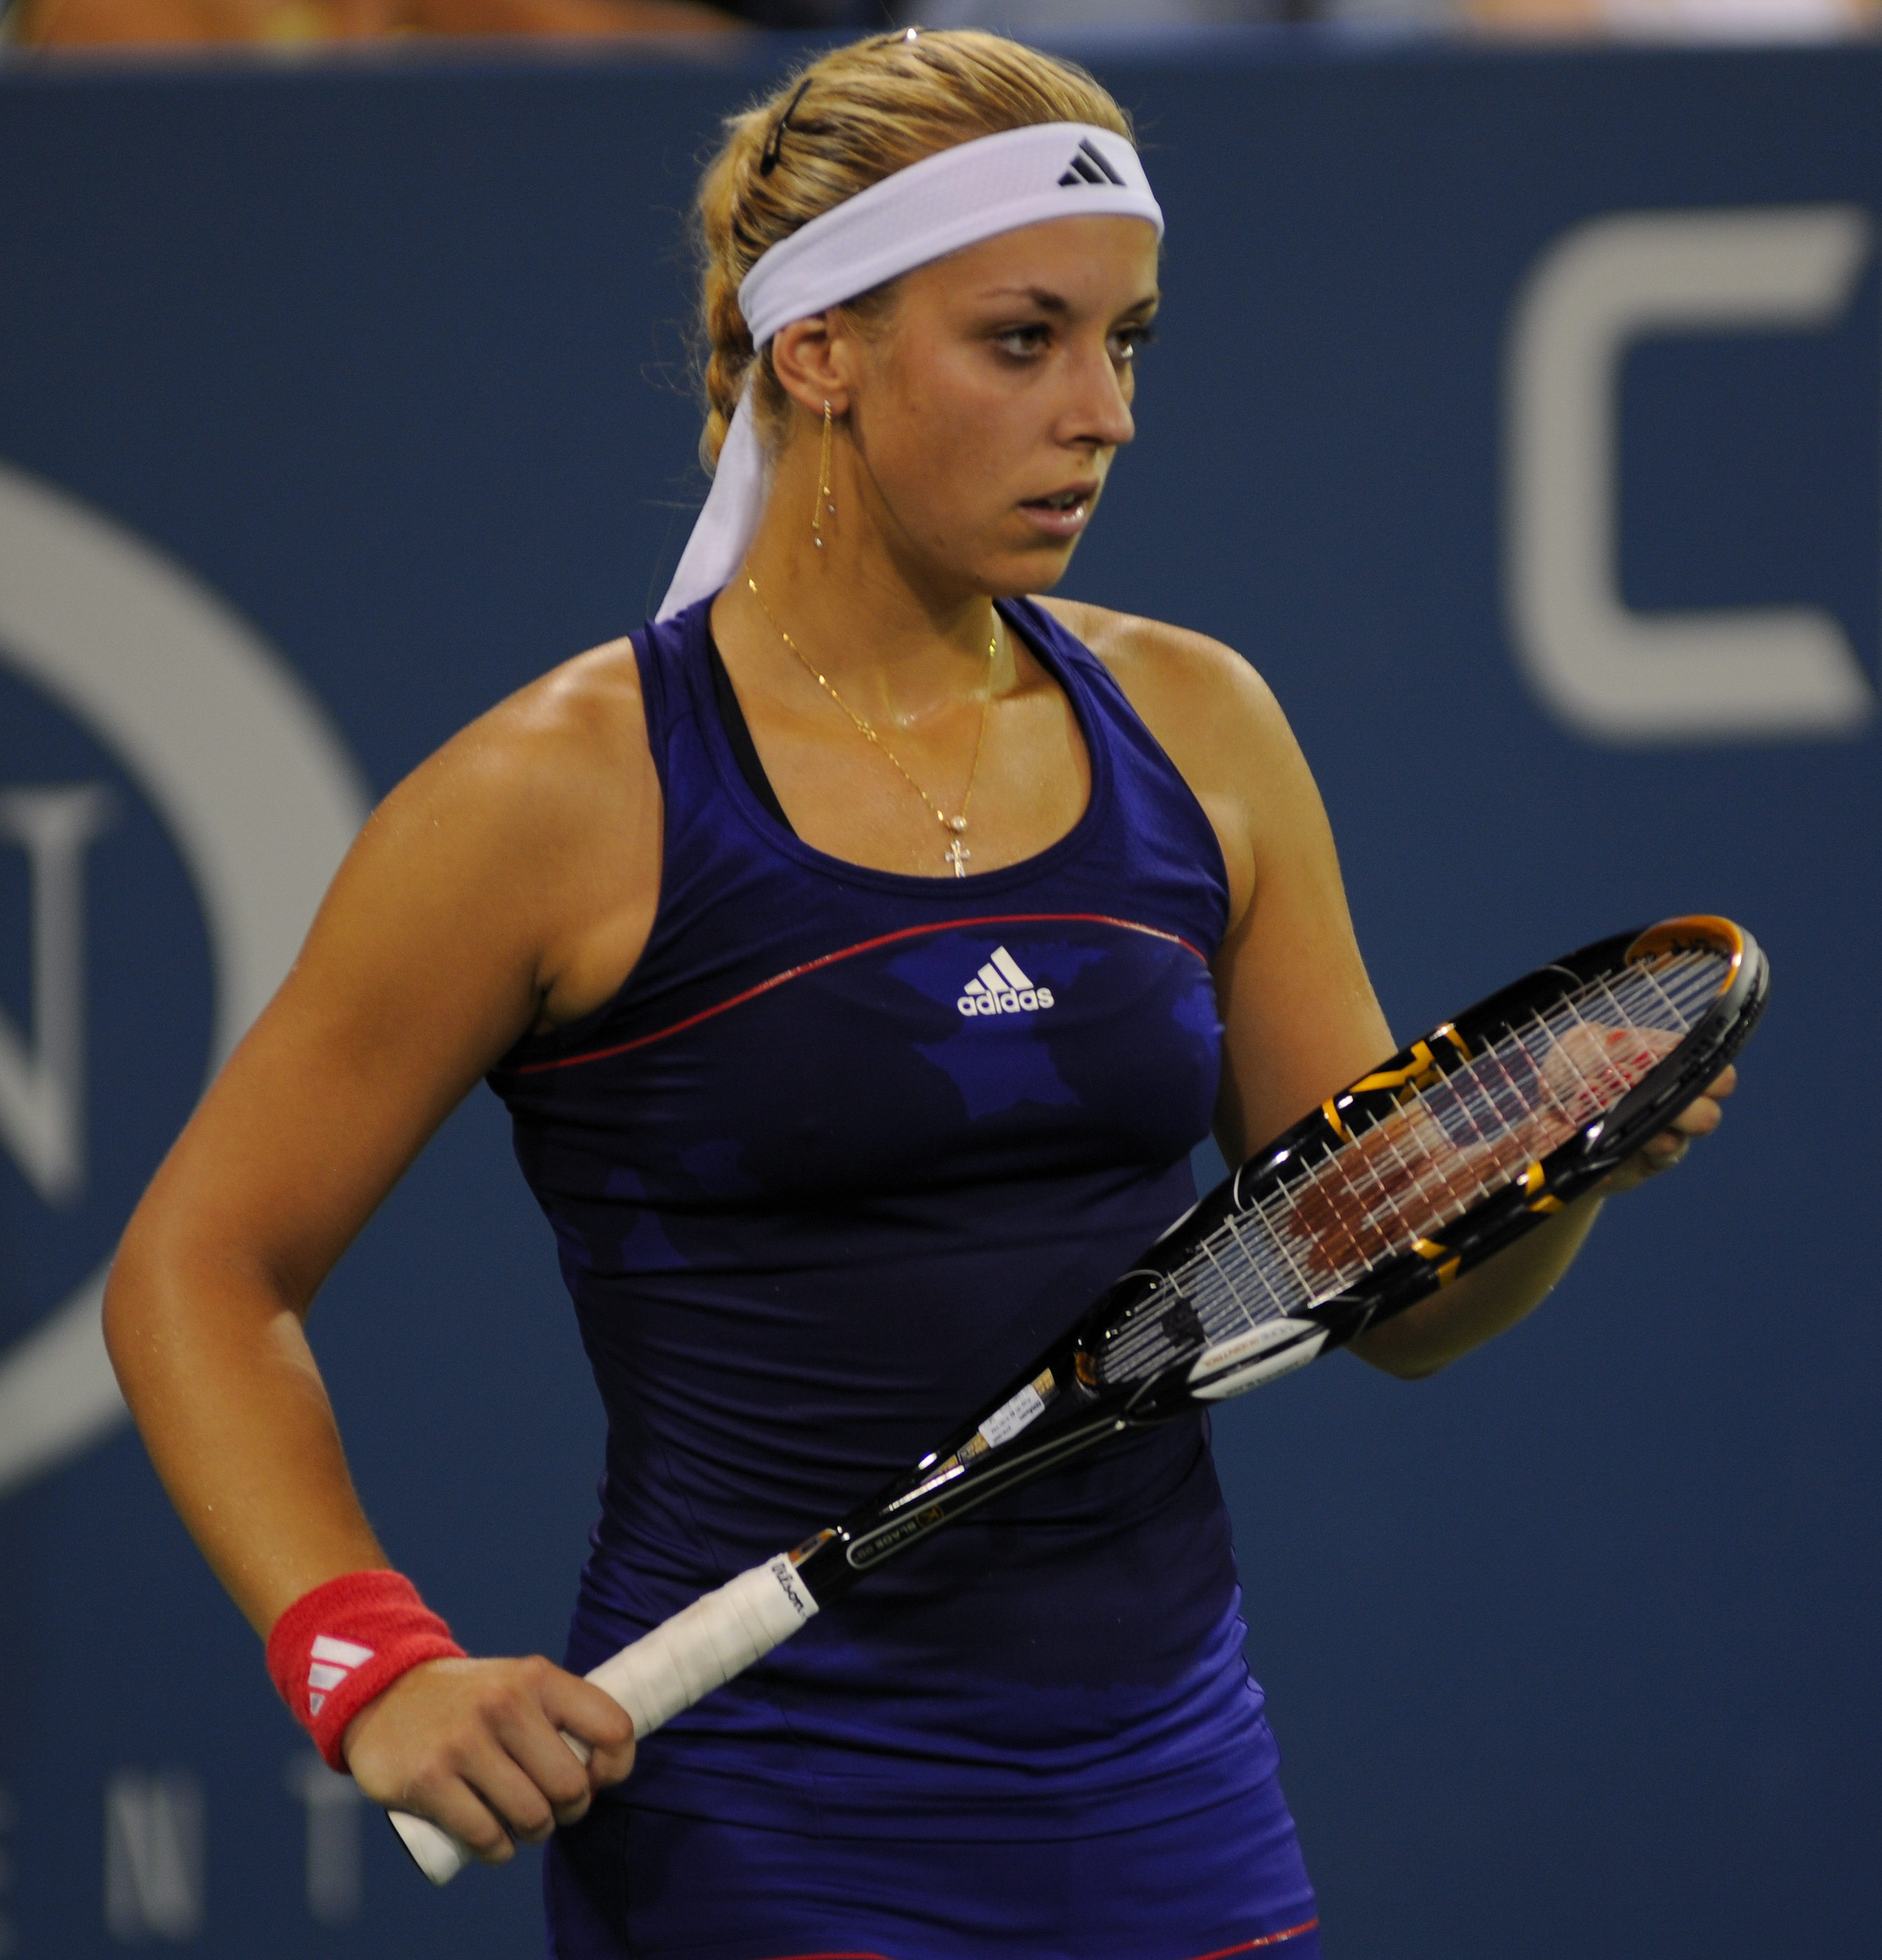 File:Sabine Lisicki at the 2010 US Open 03.jpg - Wikimedia Commons